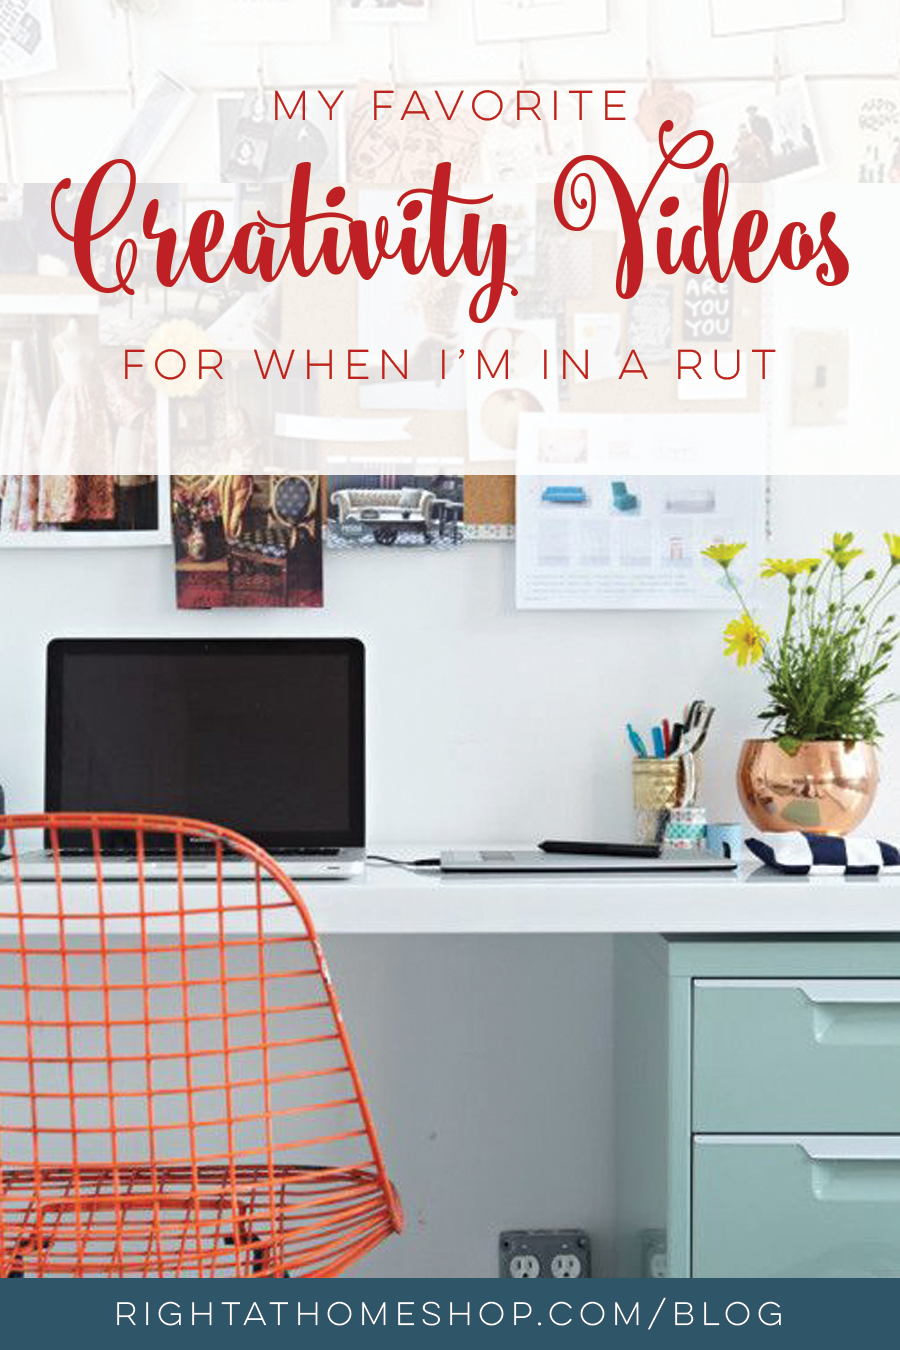 My Favorite Creativity Videos For When You're In A Rut - Right at Home Shop